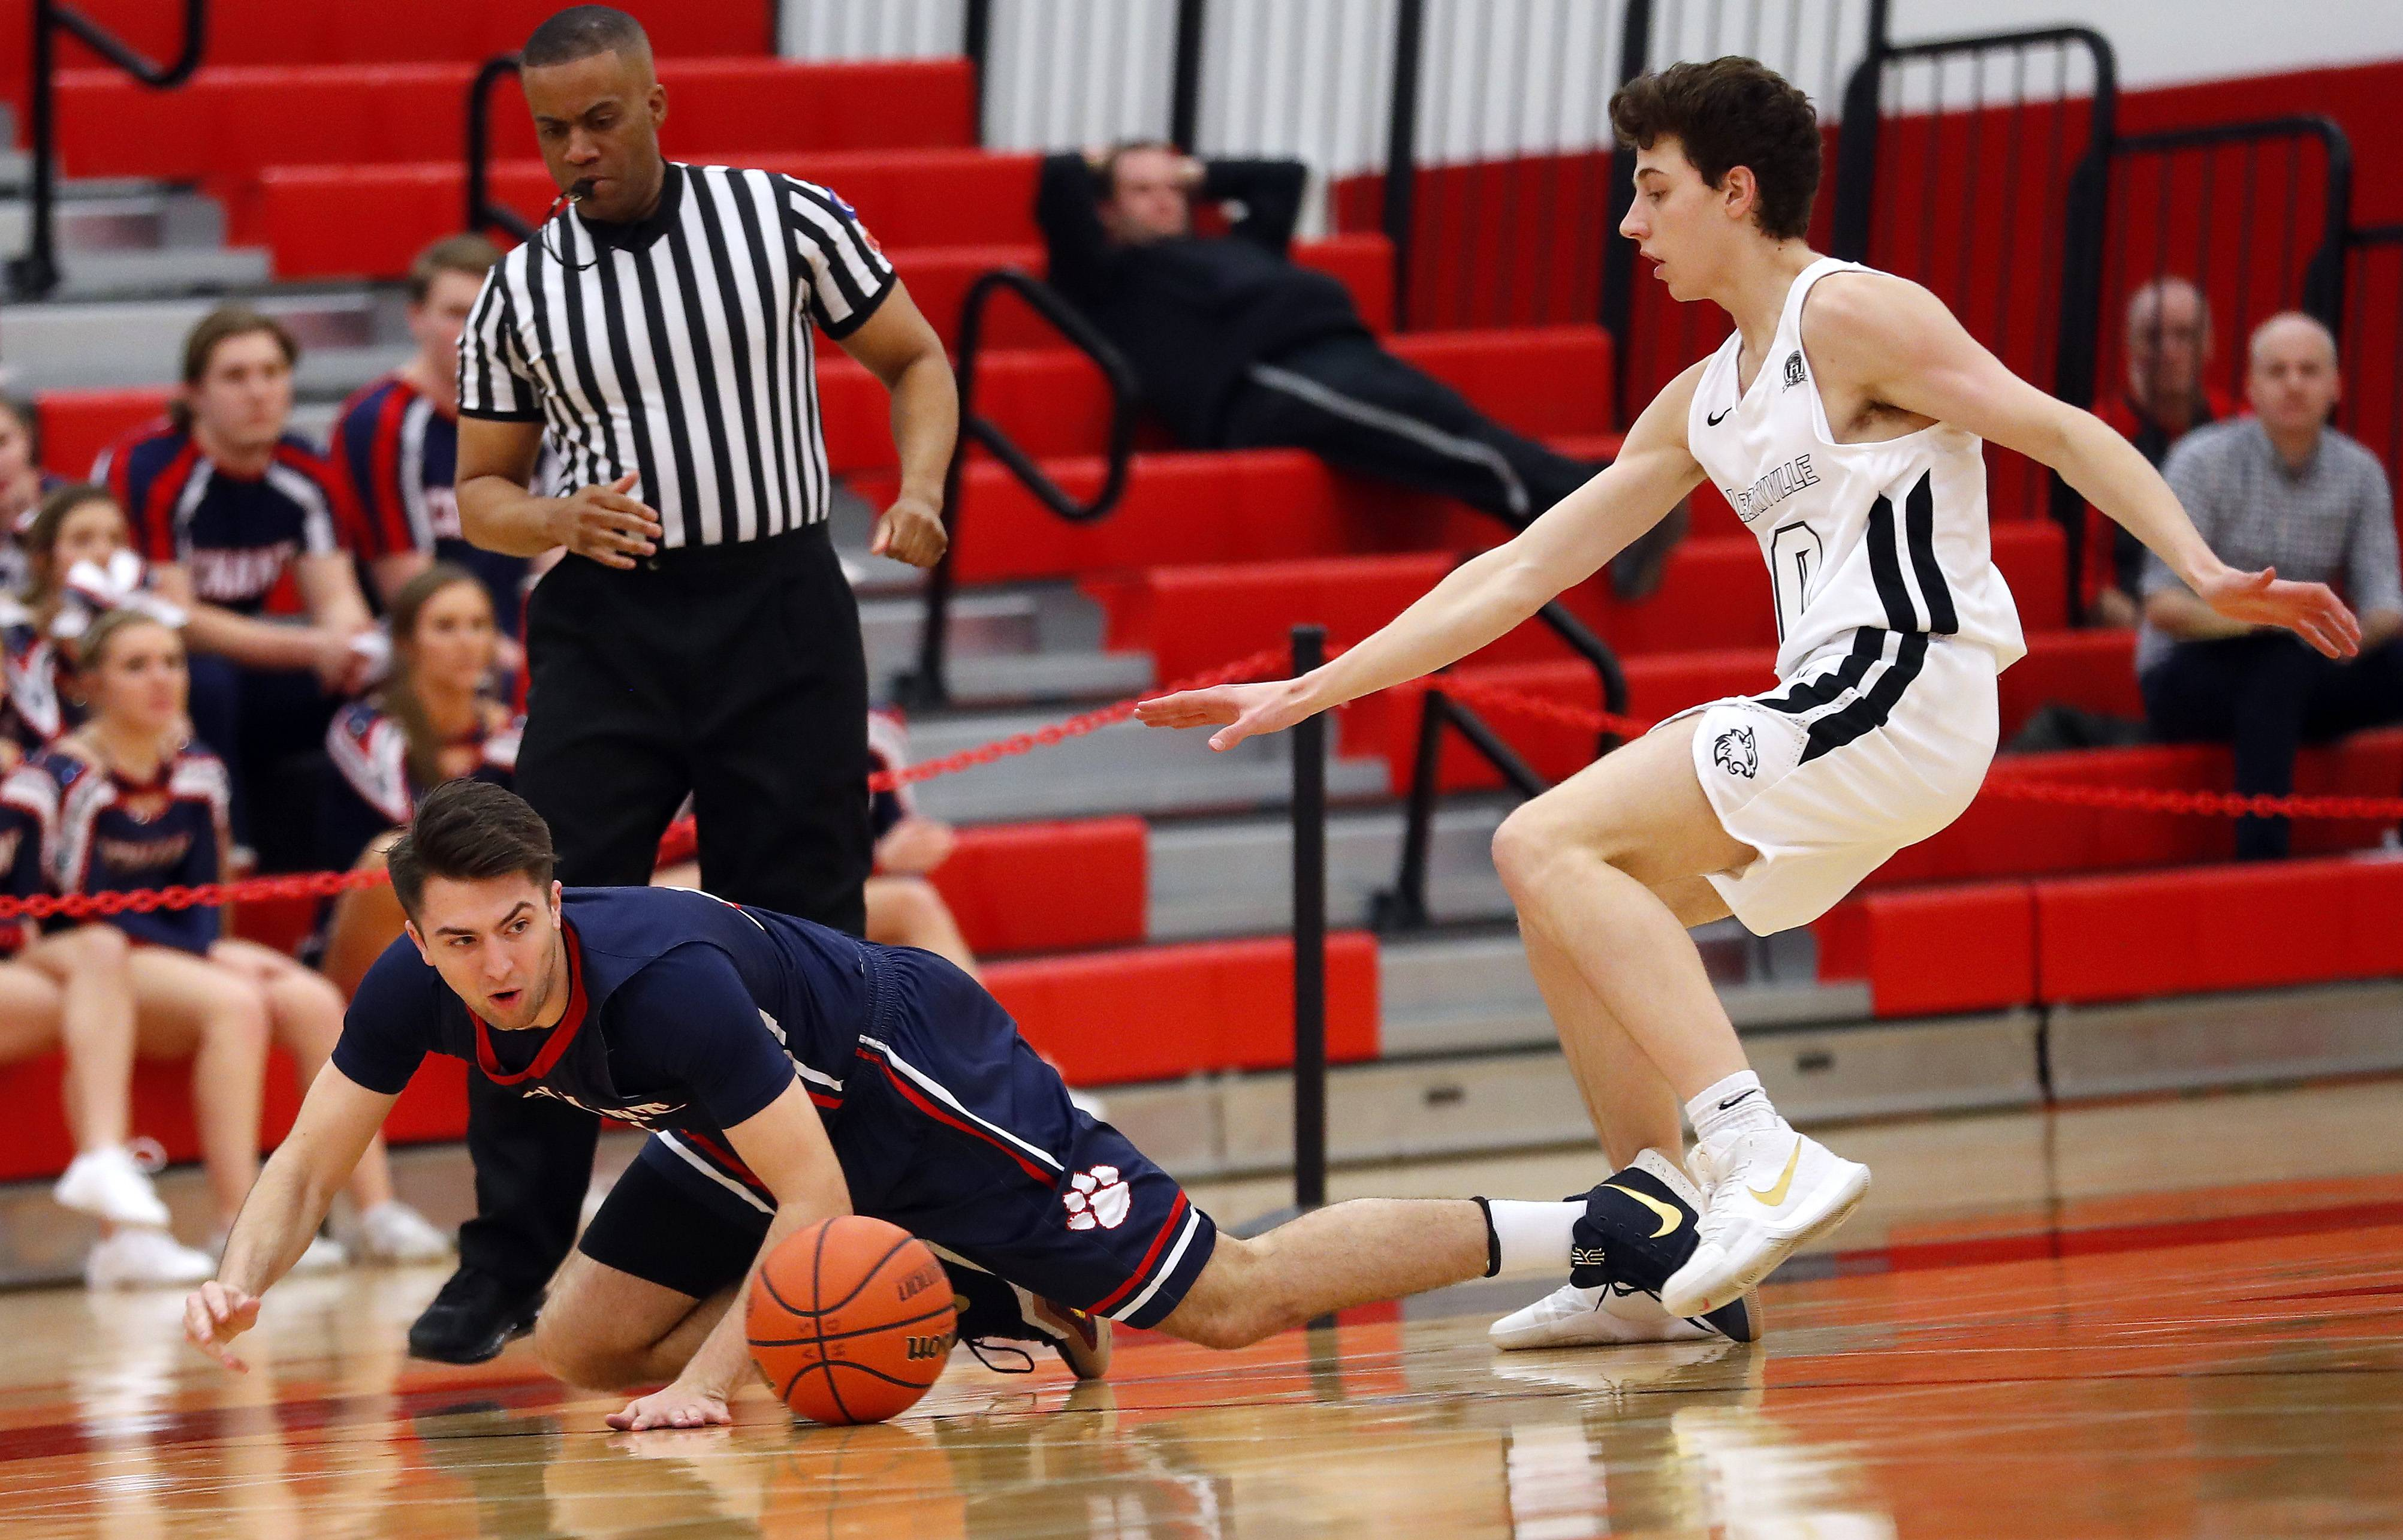 Conant's Ben Schols, left, and Libertyville's Josh Lilja scramble for a loose ball during Class 4A regional final play Friday at Deerfield.